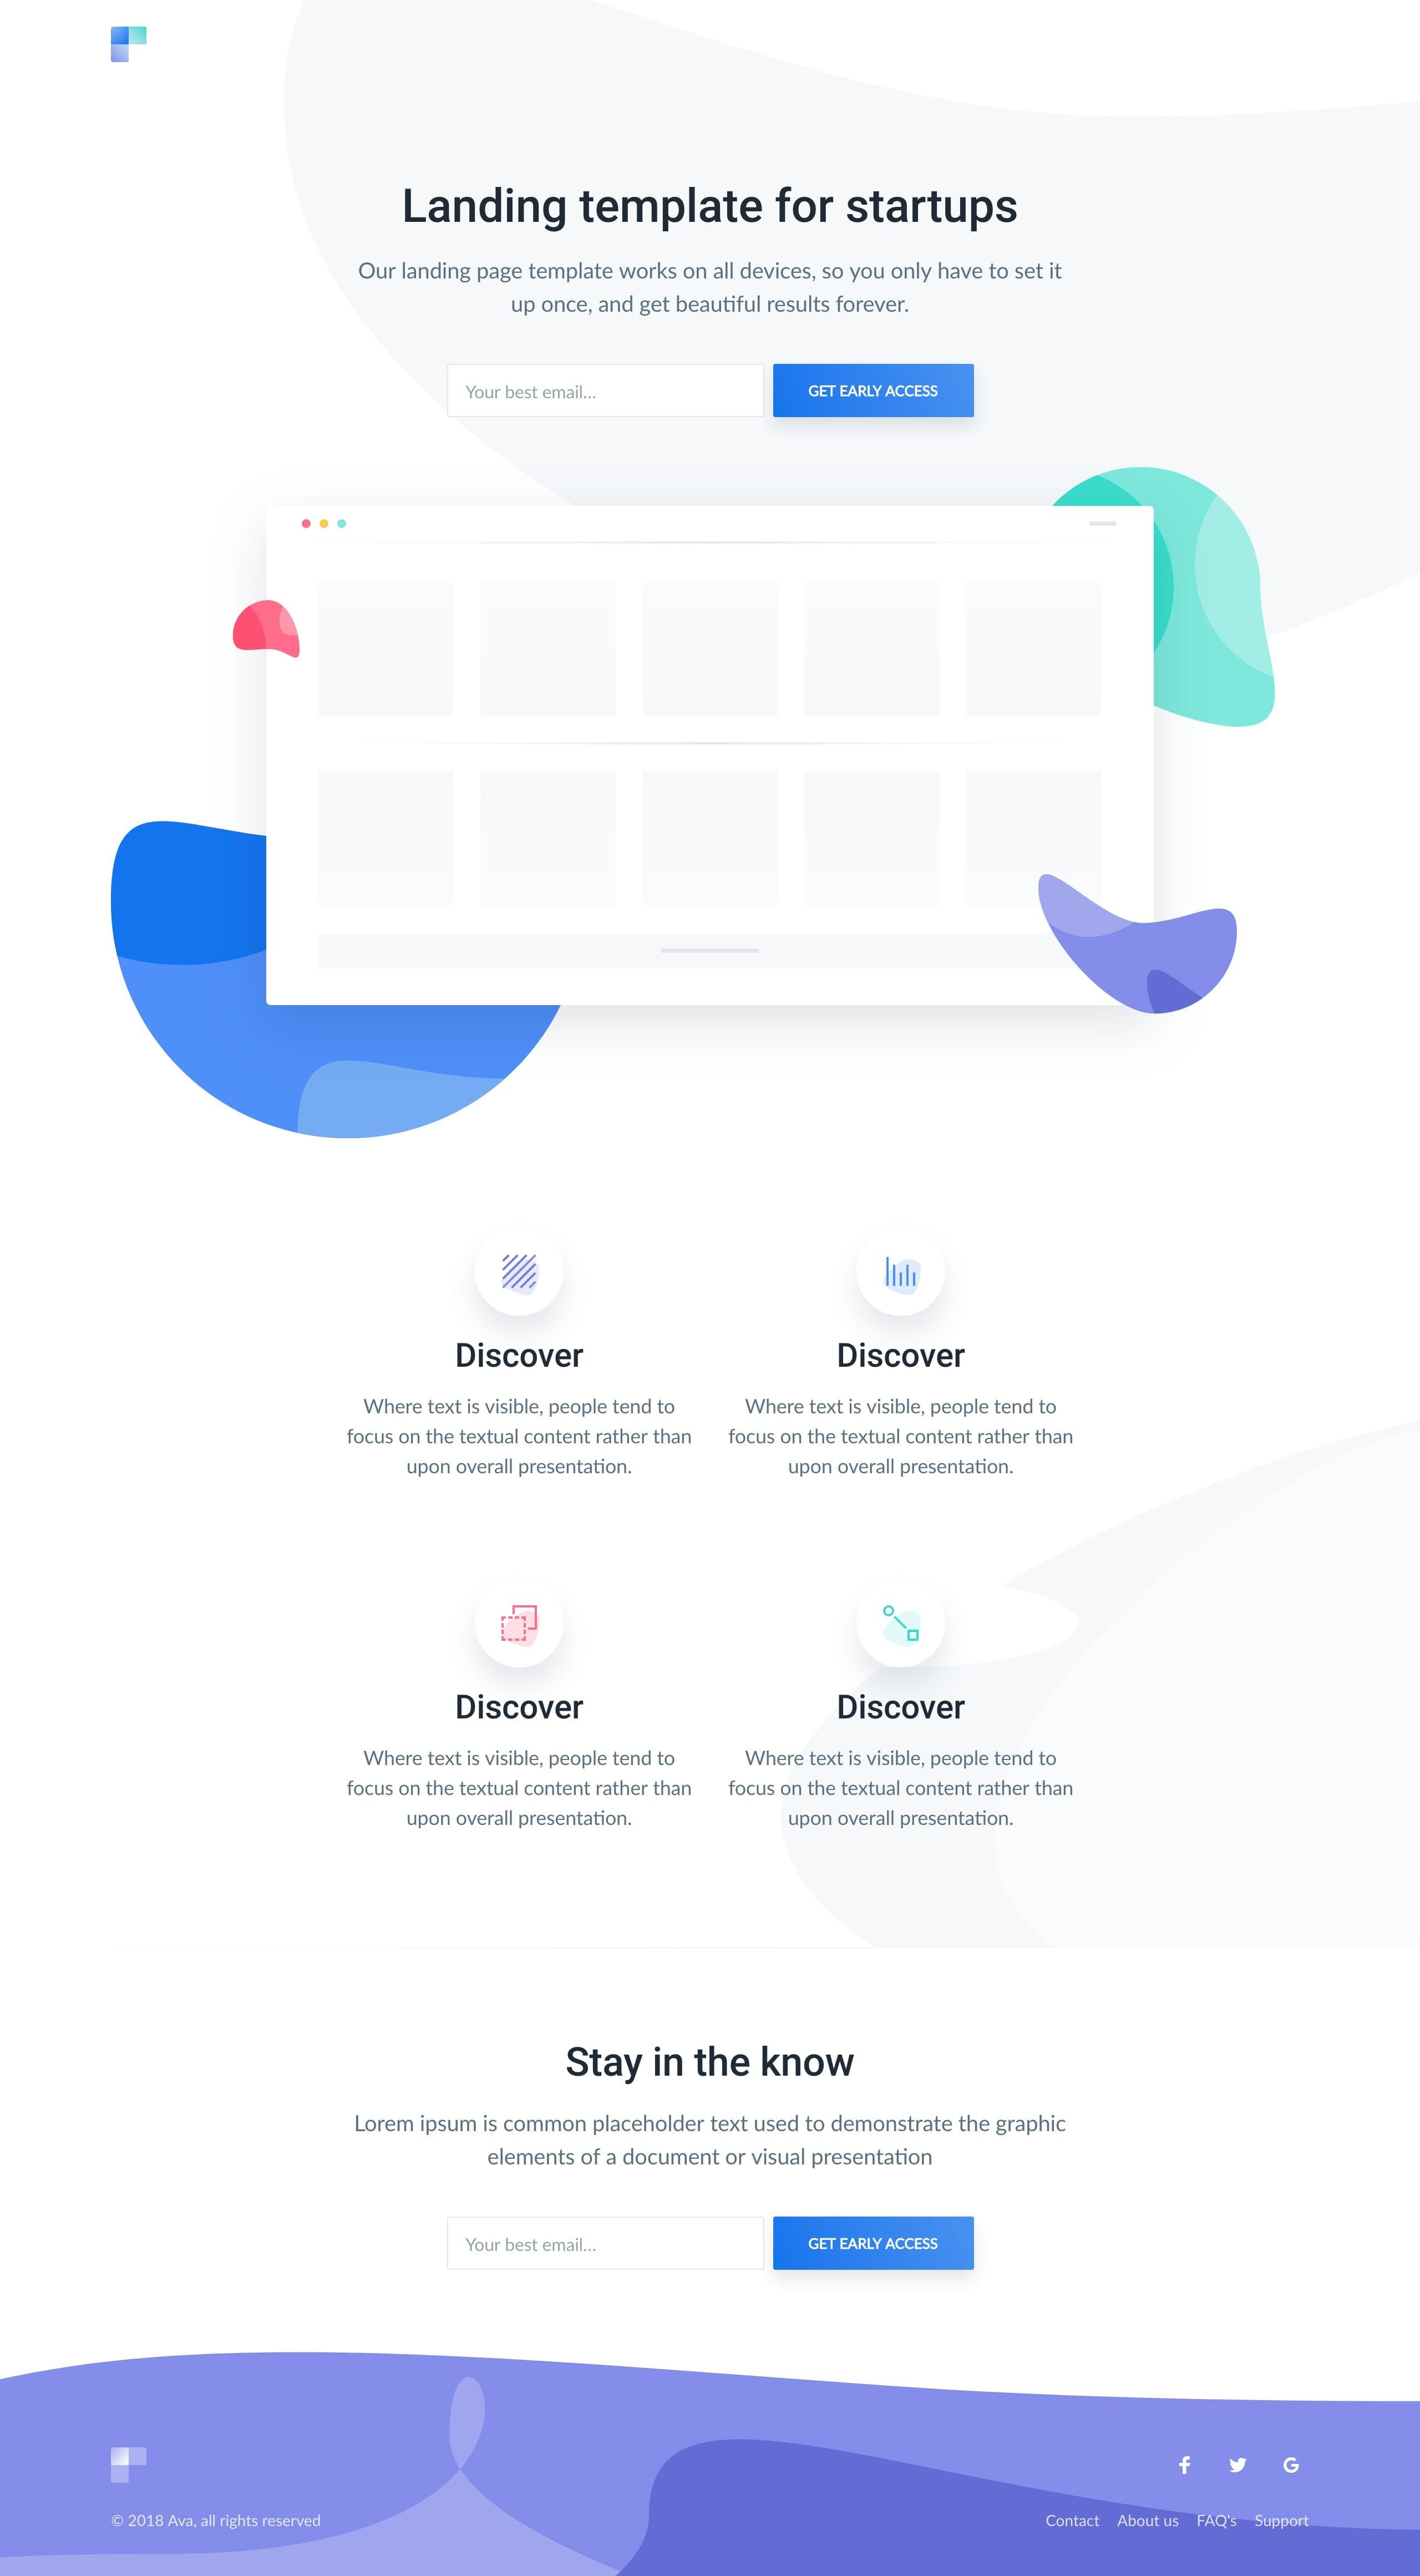 Ava Is A Free Landing Page Html Template By Cruip The Design Really Is Quality For A Freebie And Features An Web Design Tips Web Design Quotes Landing Page